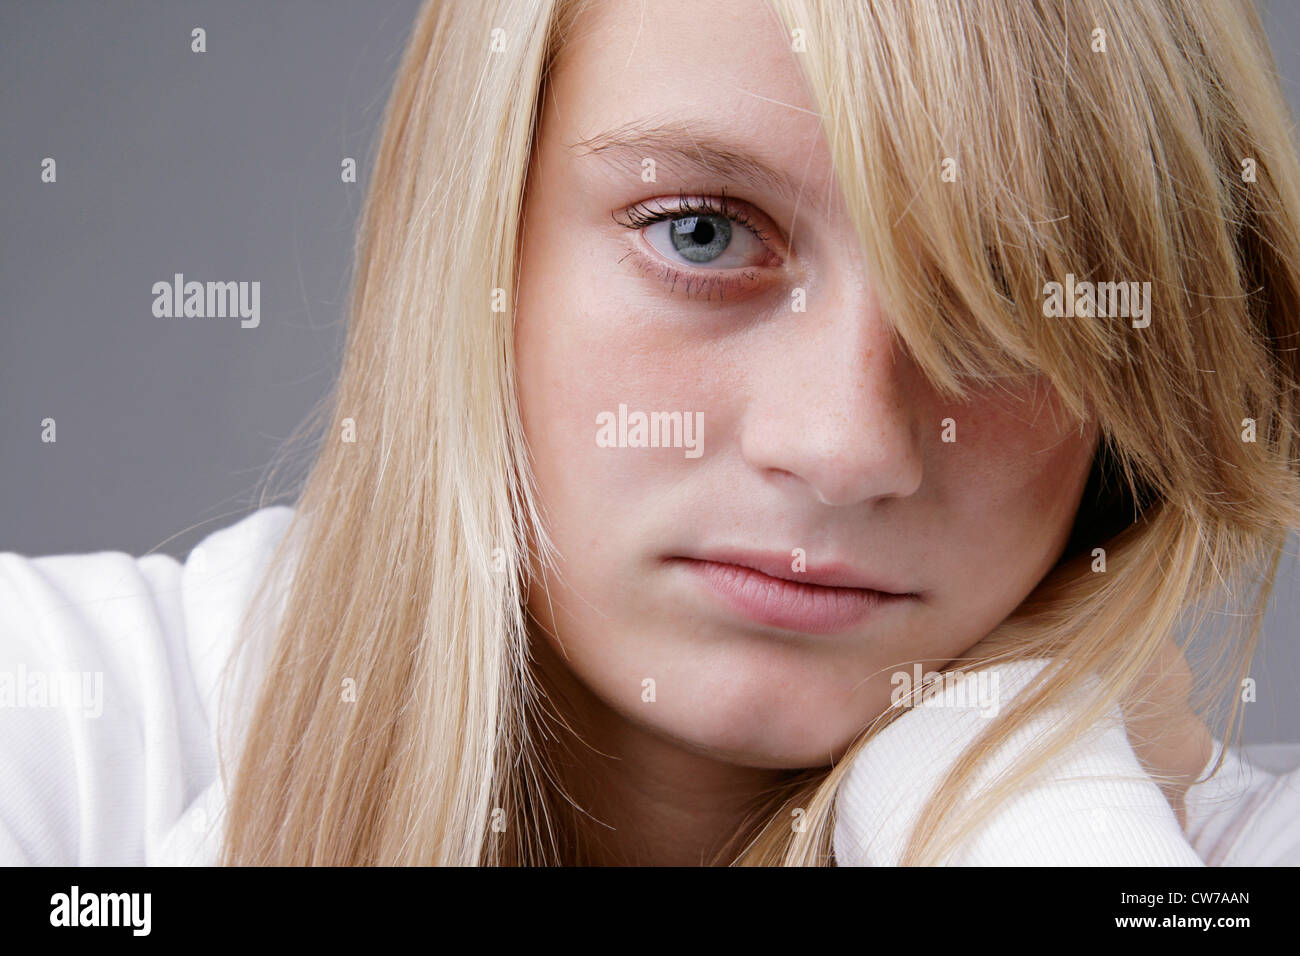 portrait of a young blond woman, Germany Stock Photo